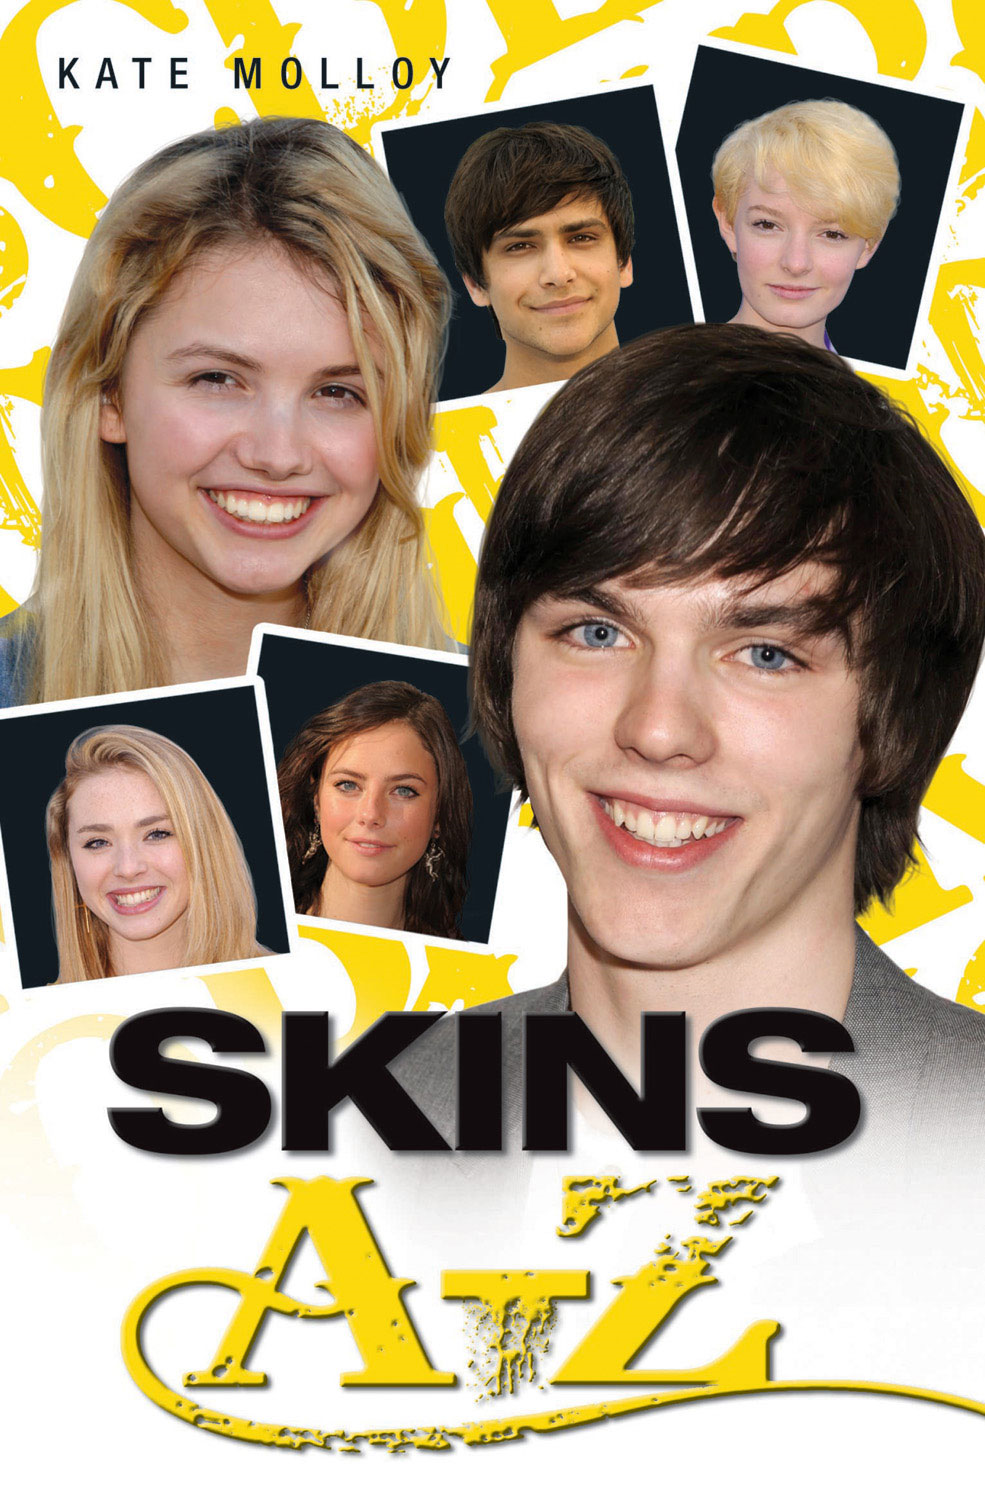 Skins A-Z By: Kate Molloy